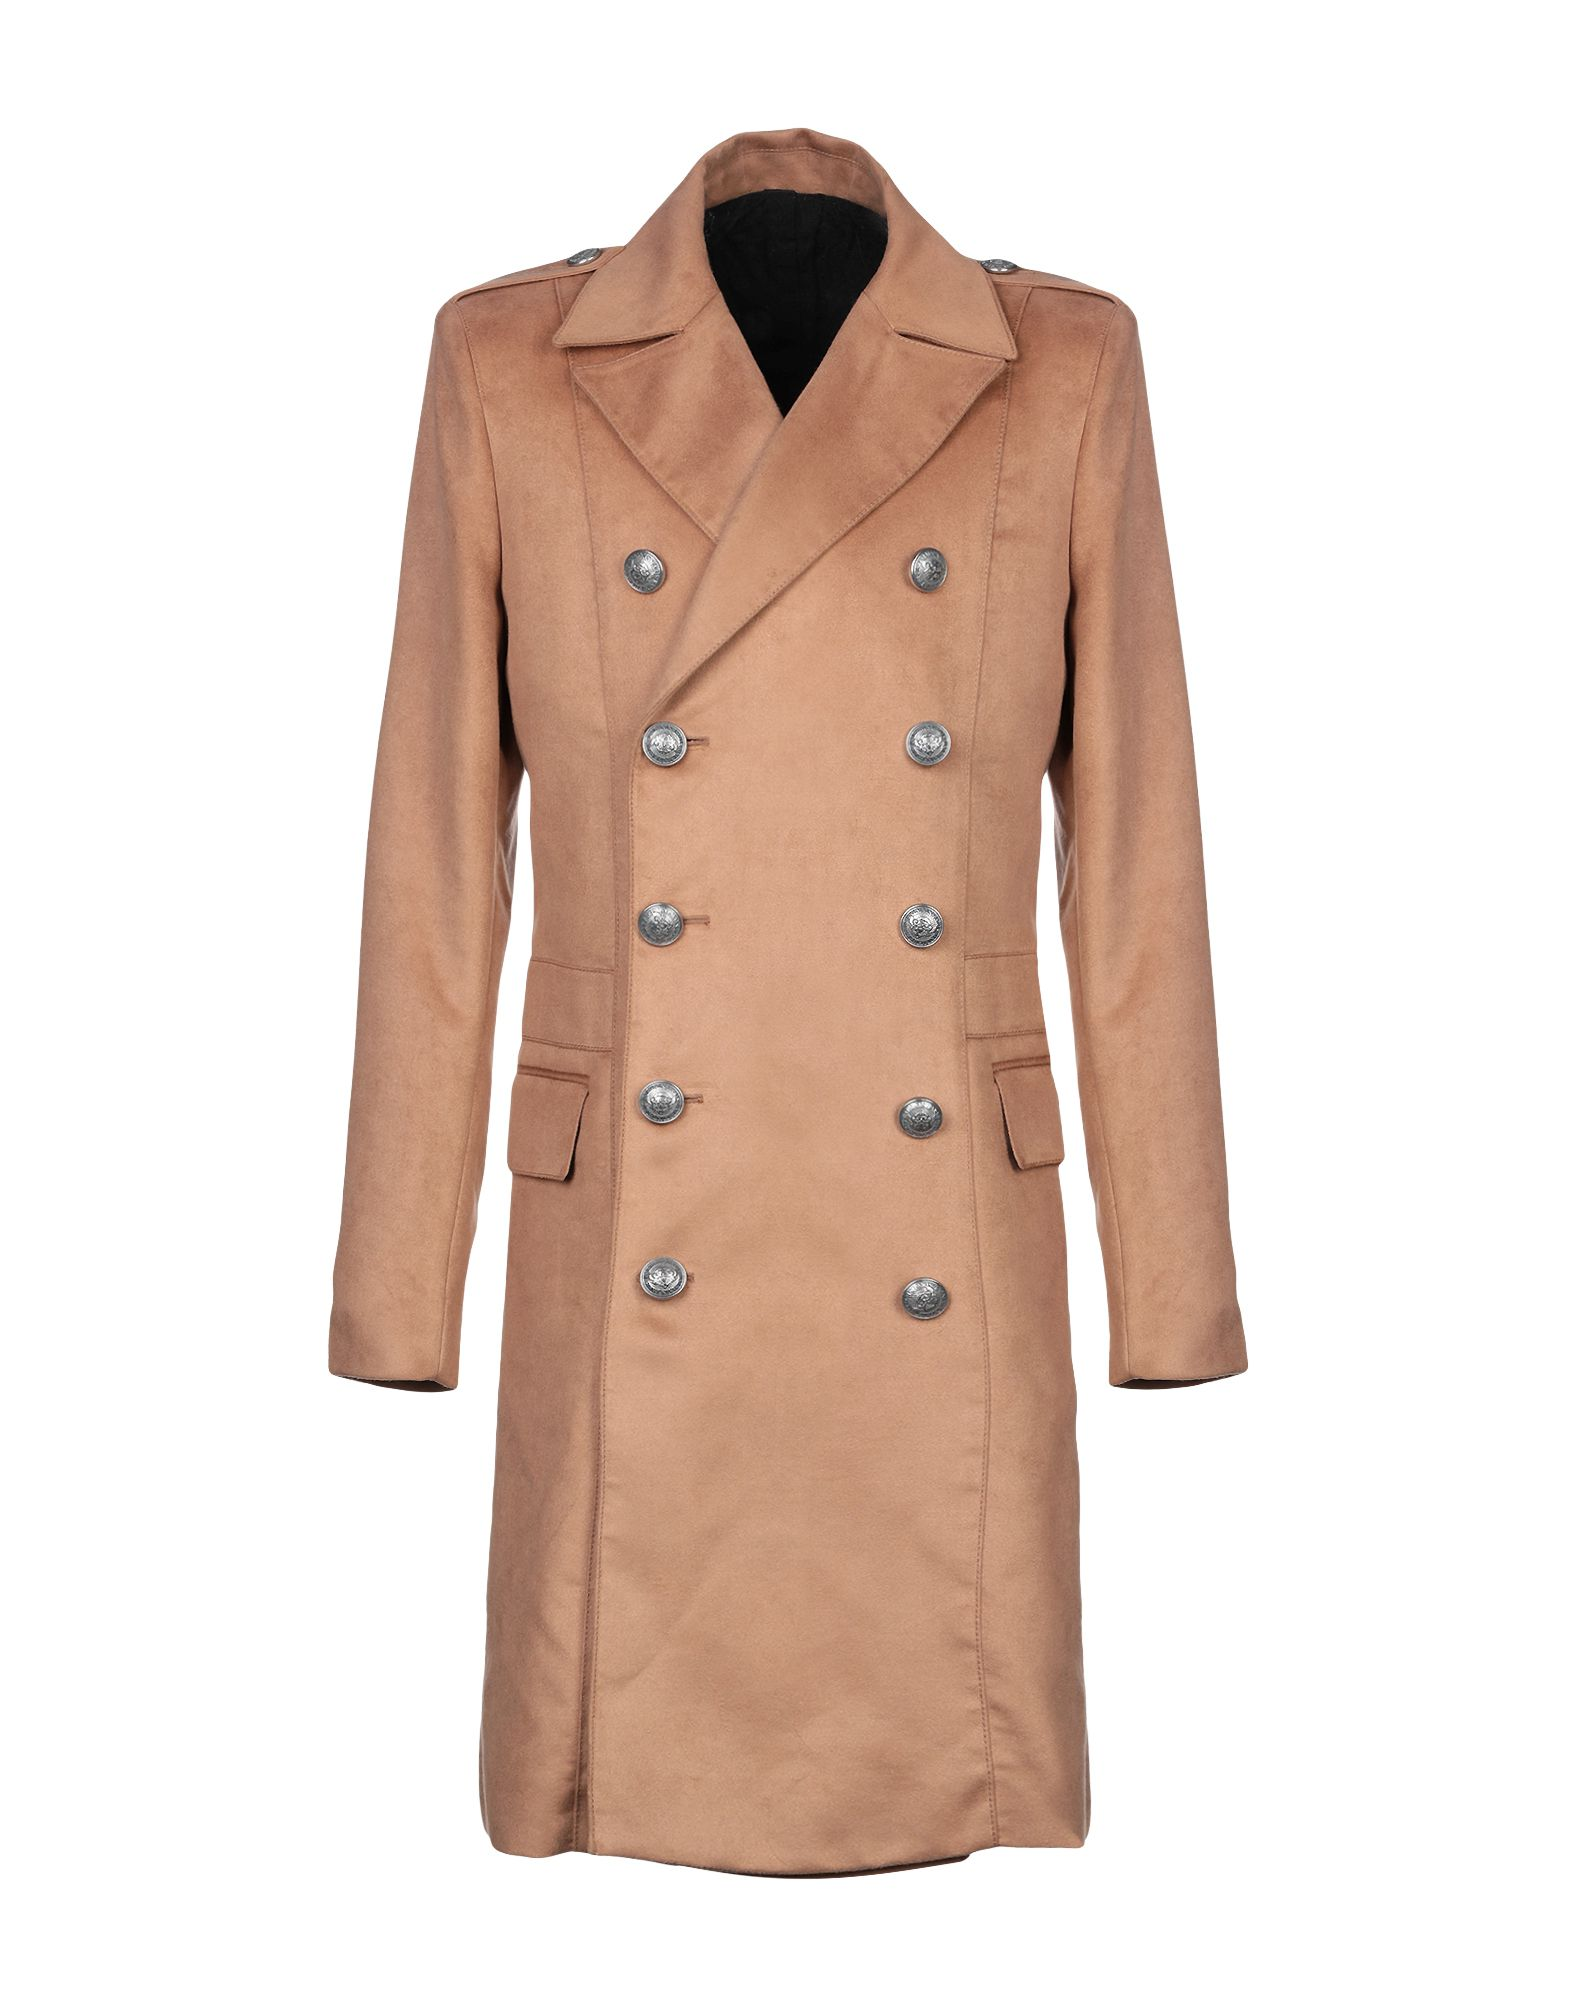 BALMAIN Coats. velour, flashes, half-belt, solid color, double-breasted, button closing, lapel collar, multipockets, internal pockets, long sleeves, buttoned cuffs, rear slit, fully lined, small sized. 61% Viscose, 39% Cotton